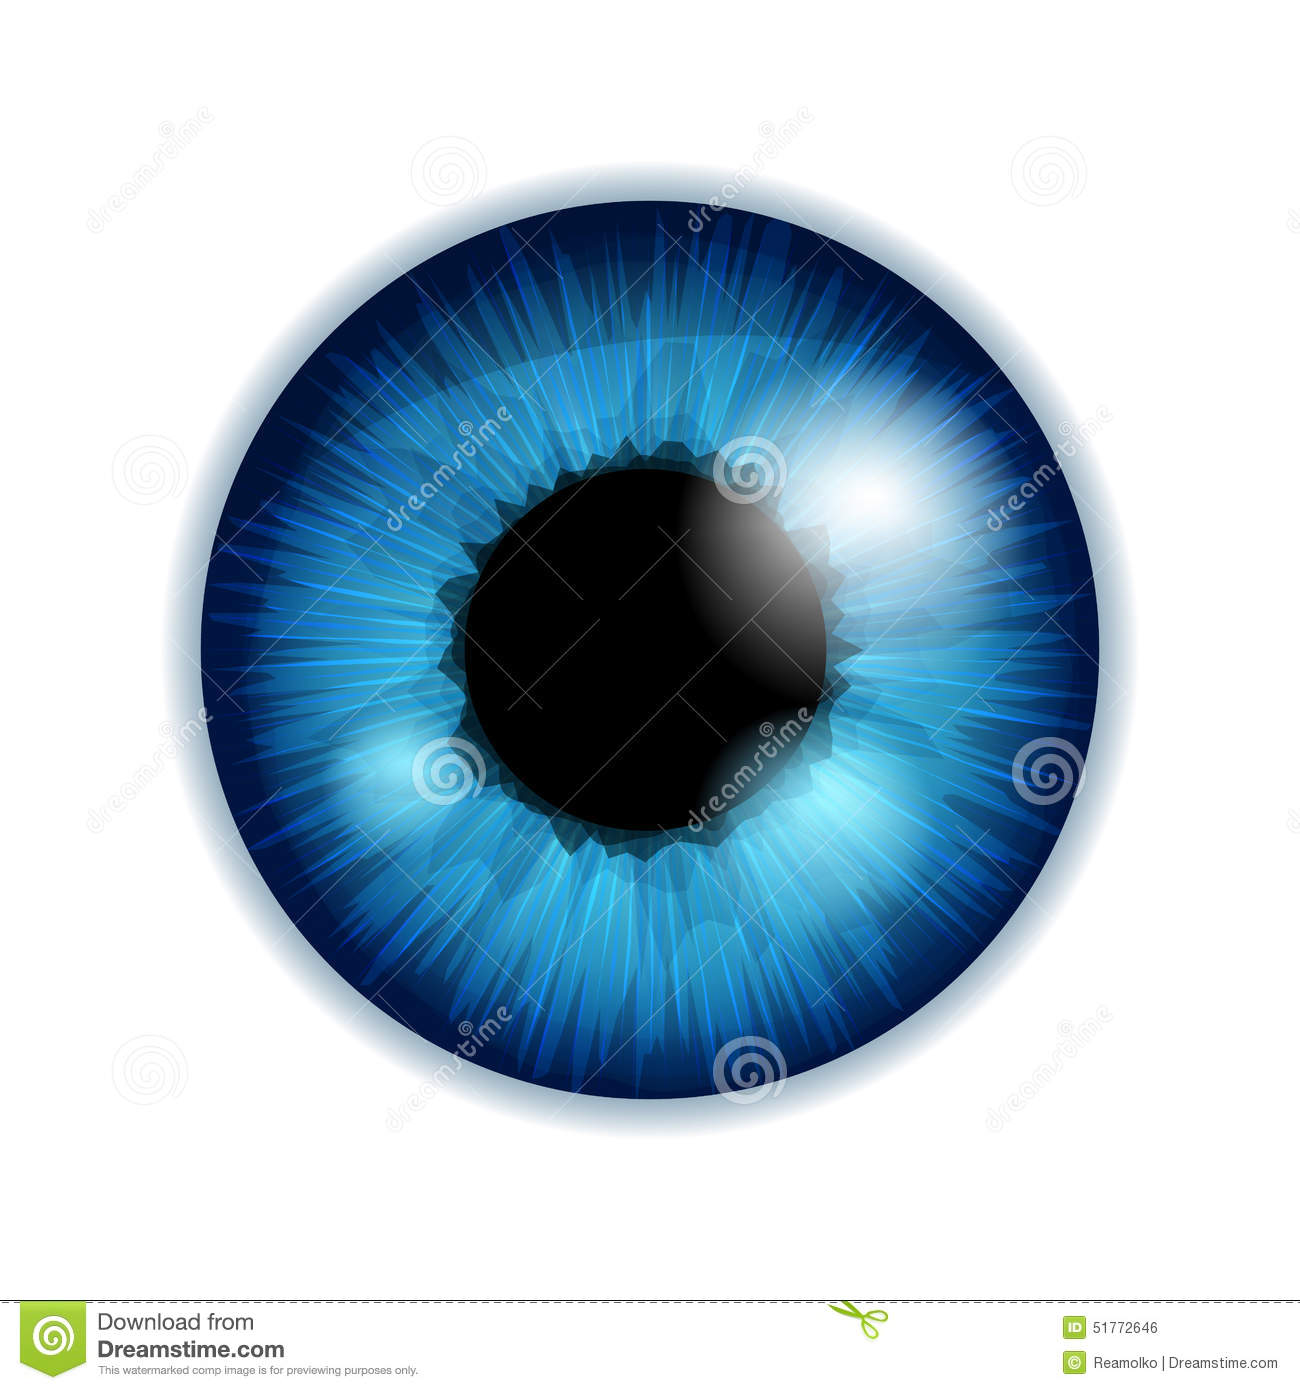 human eye iris pupil blue color stock vector